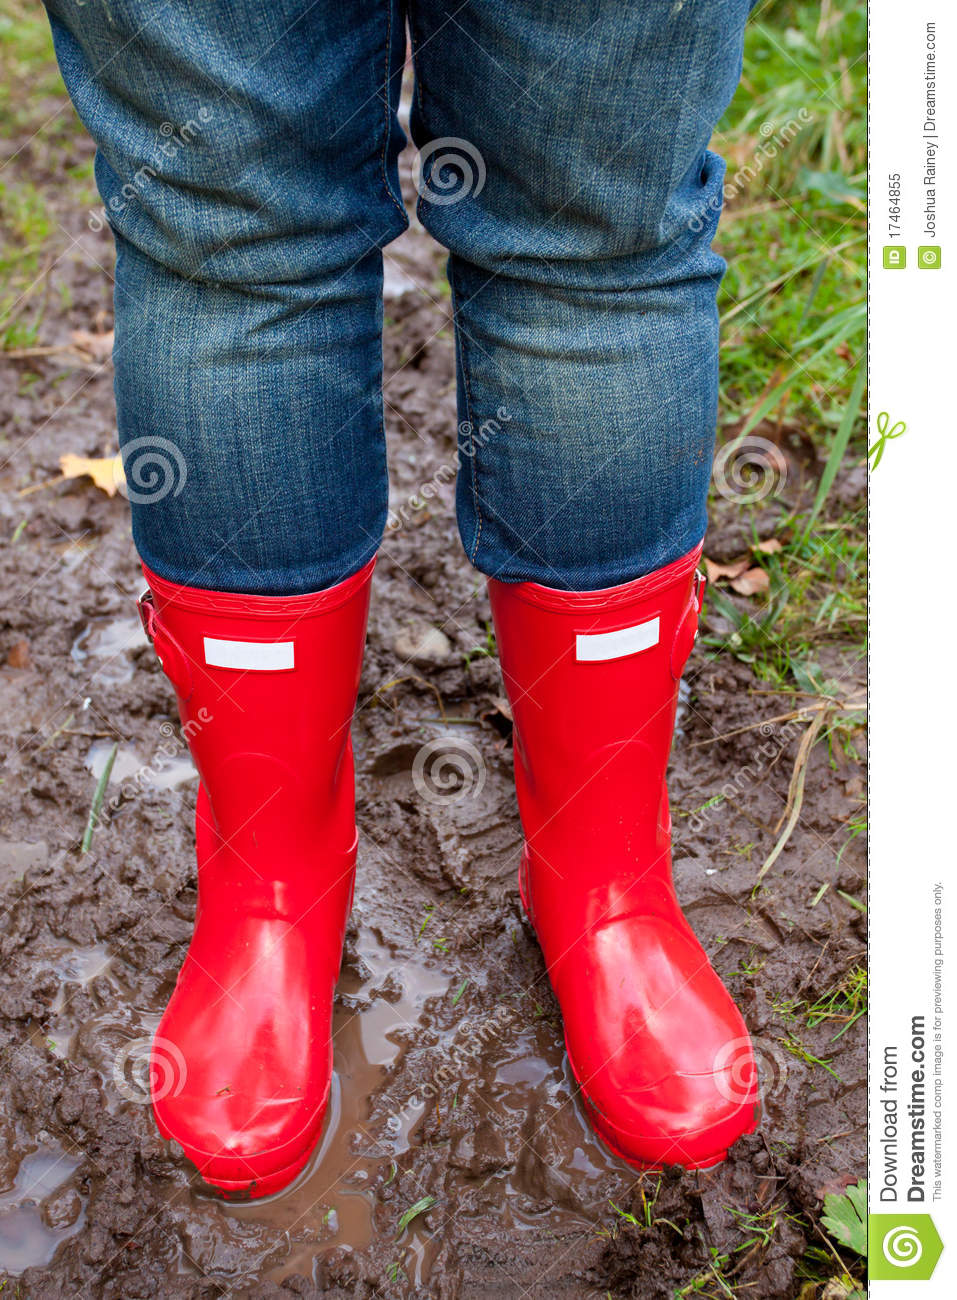 Red Rain Boots Royalty Free Stock Photo - Image: 17464855